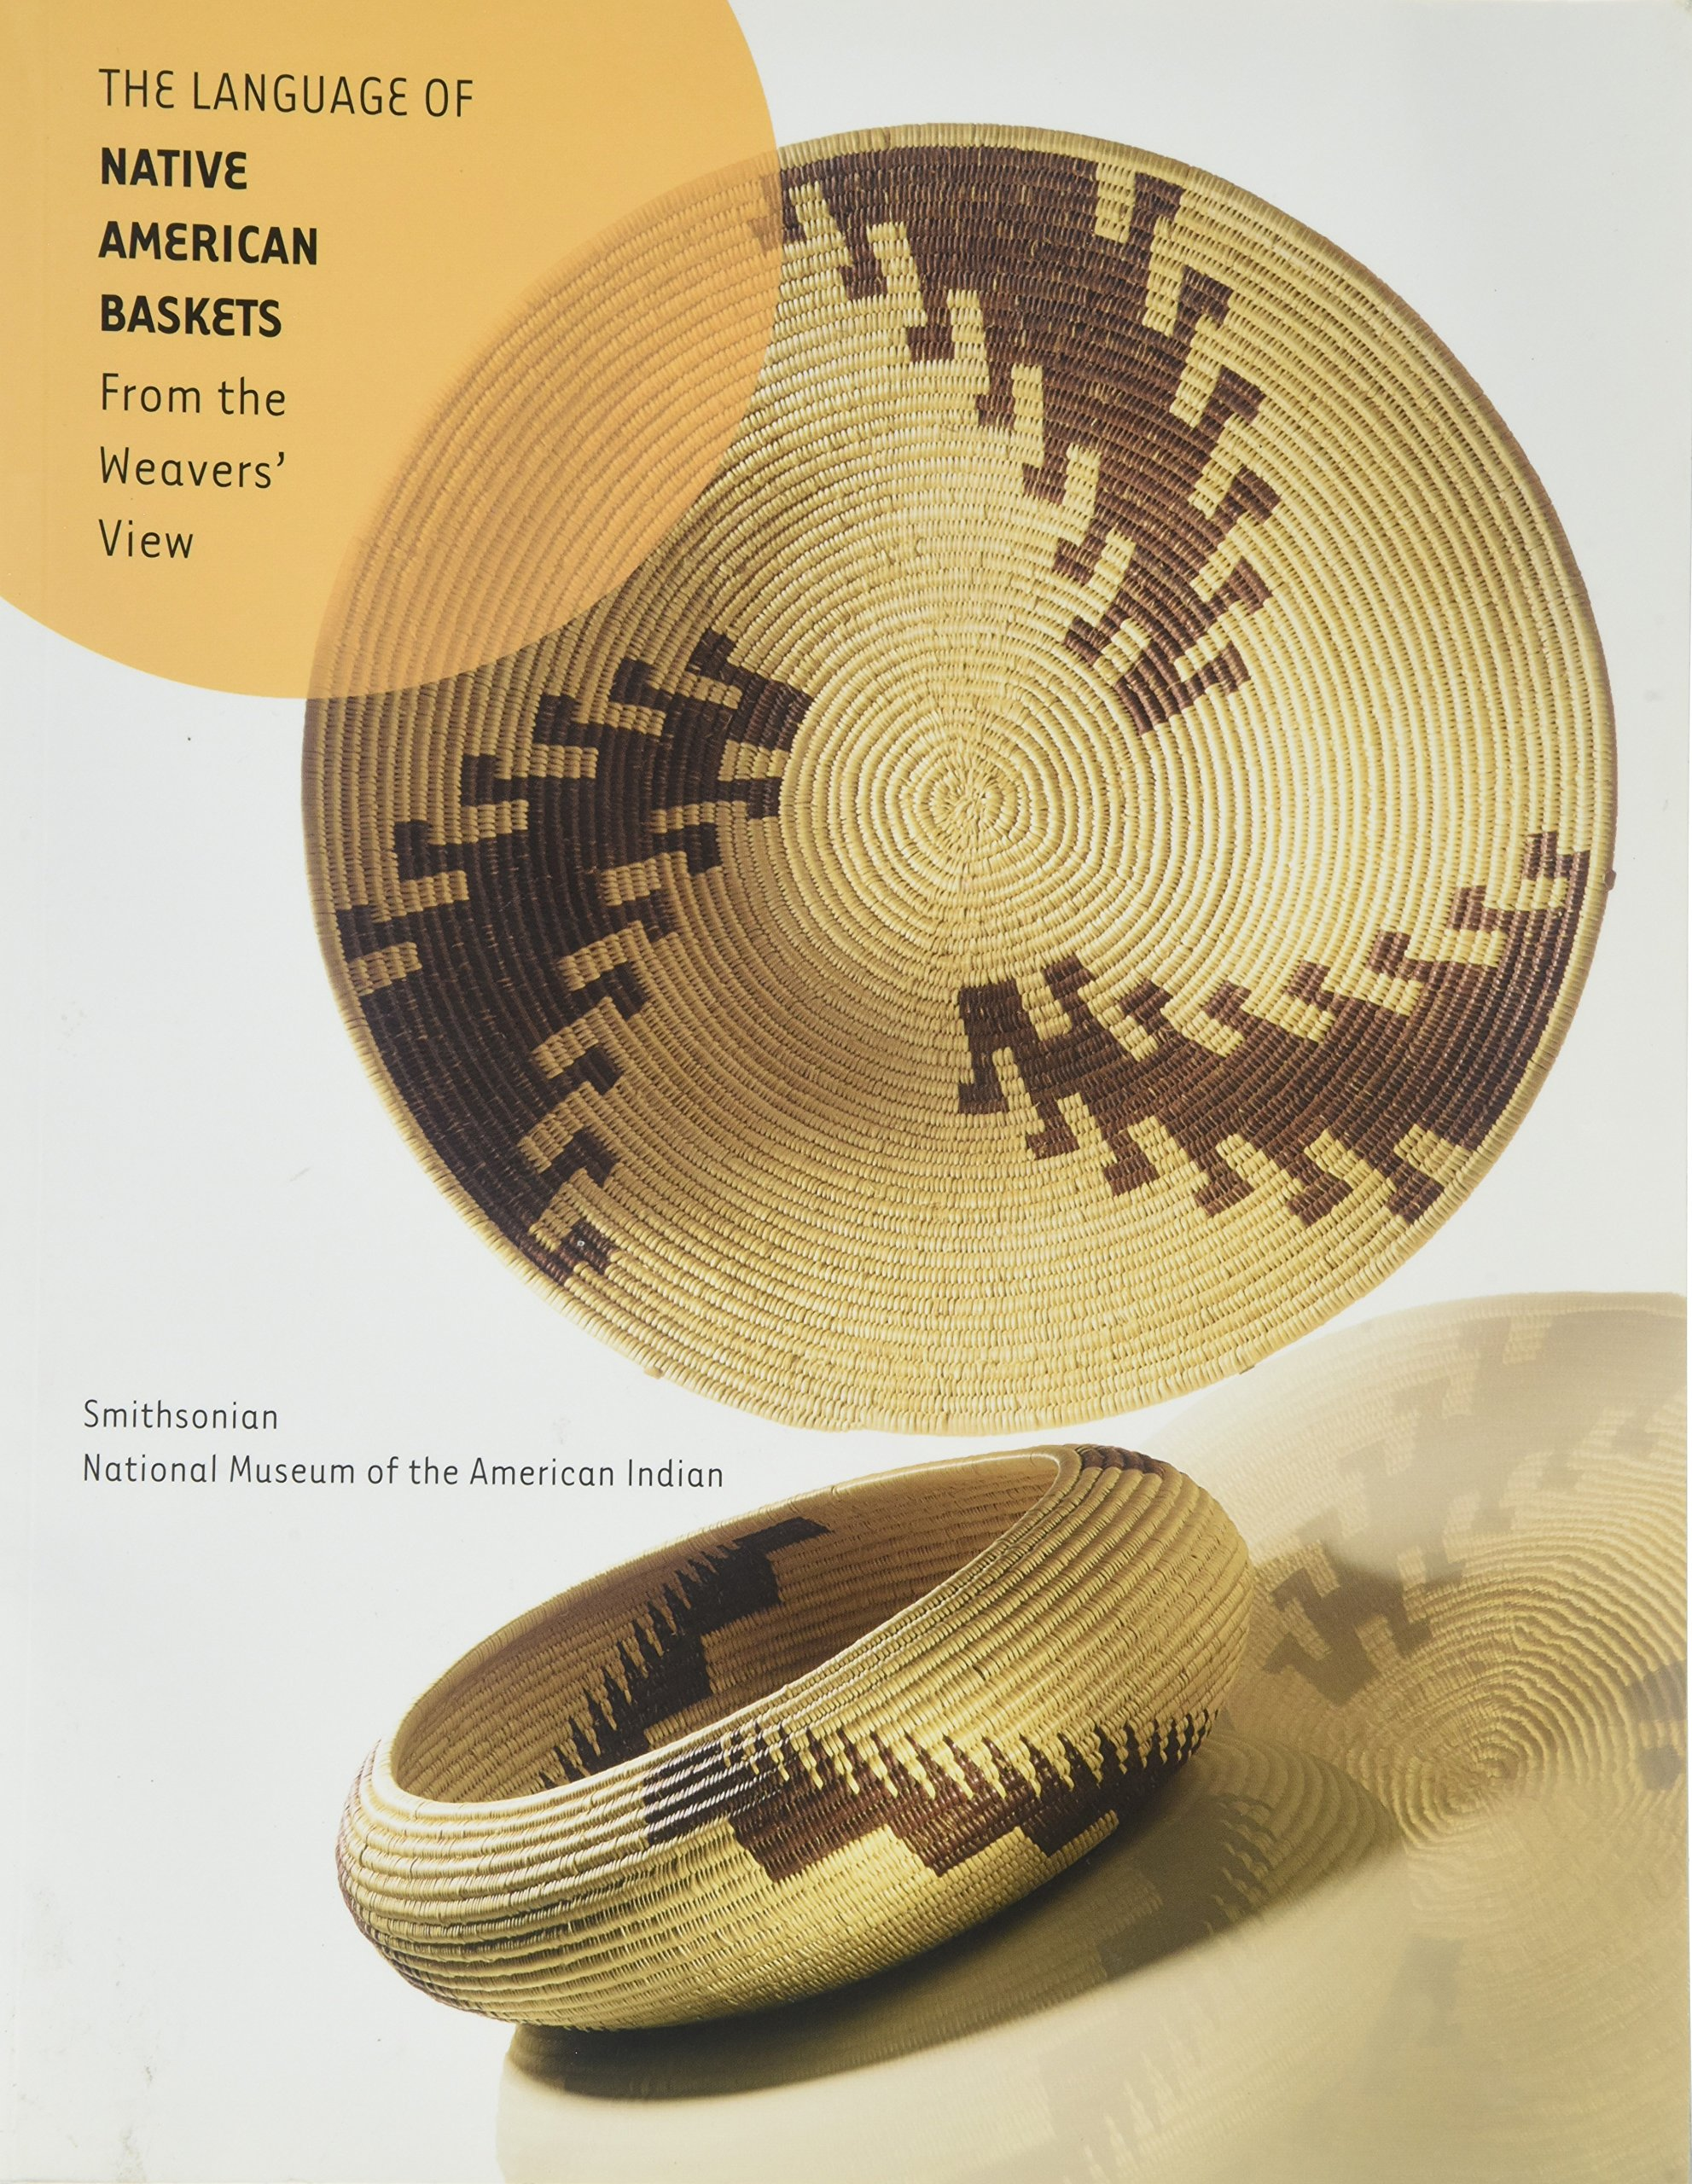 The Language of Native American Baskets: From the Weavers' View by Natl Museum of the Amer Indian